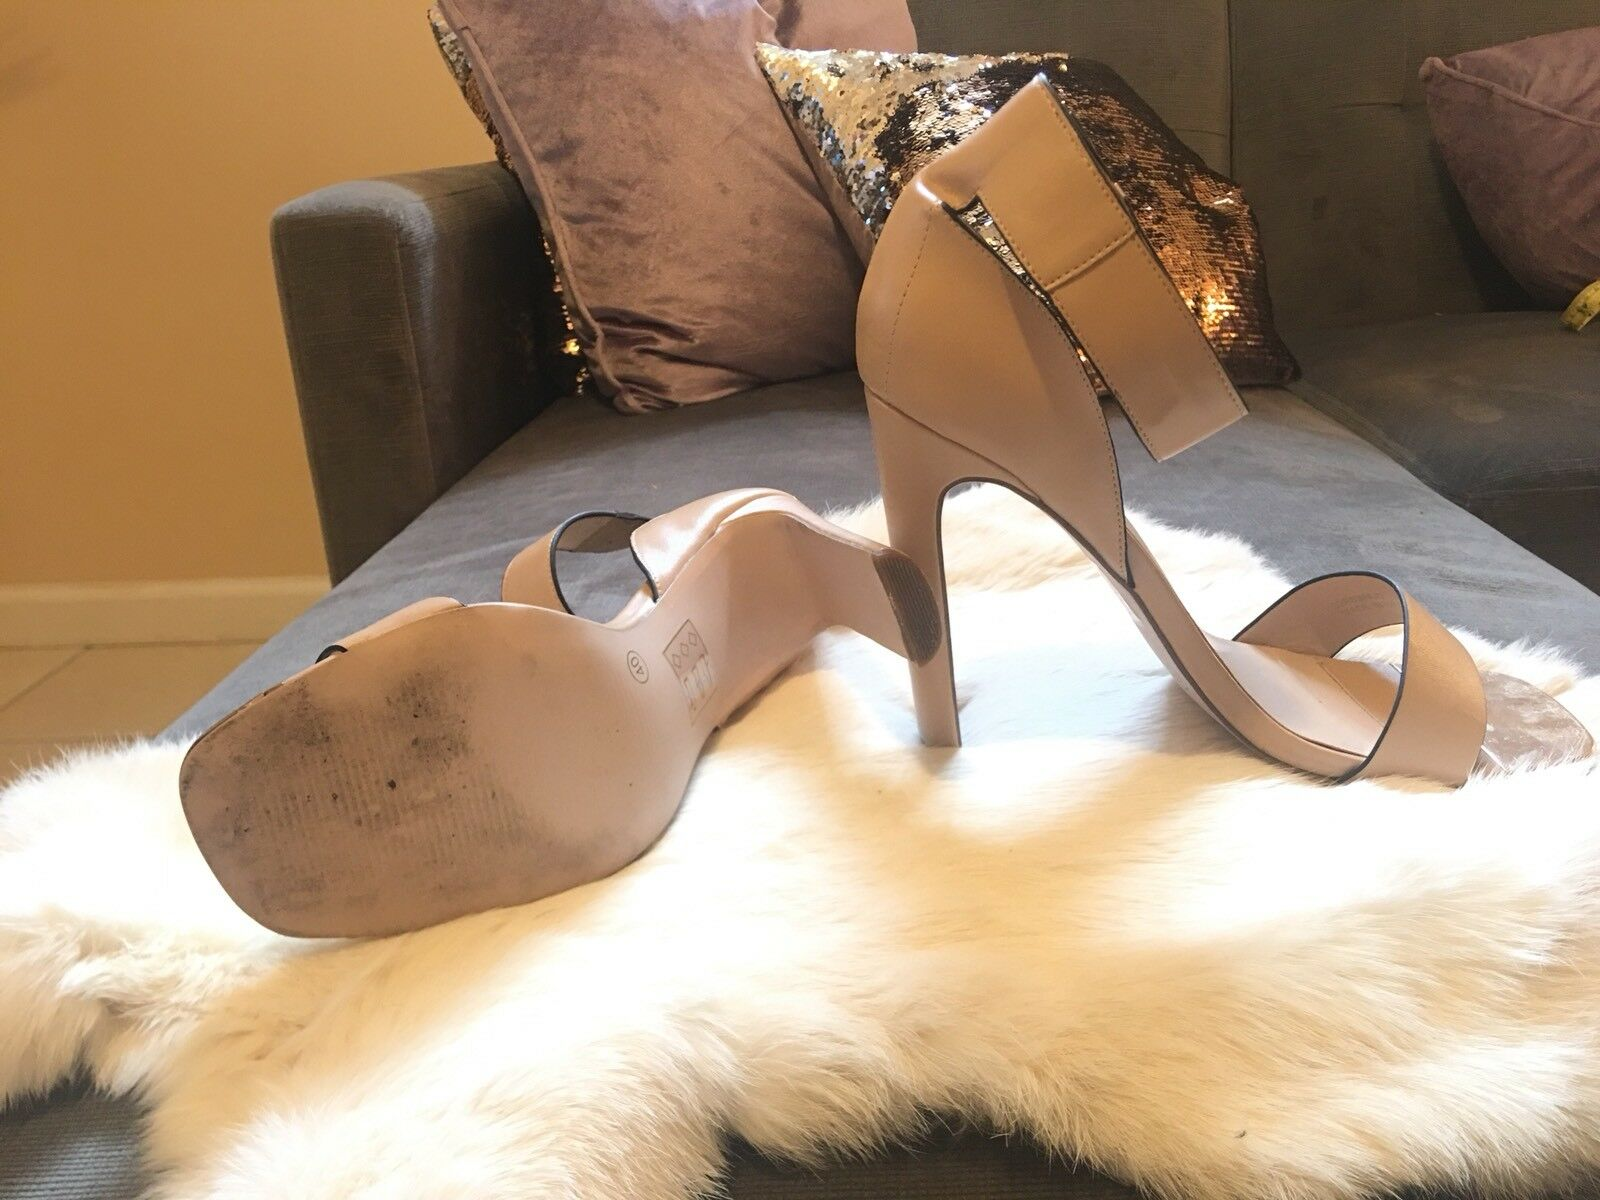 Topshop imported imported imported Nude And Gold Sandal Heels in Nude - Sz. 40 (10 Us) 582fd2